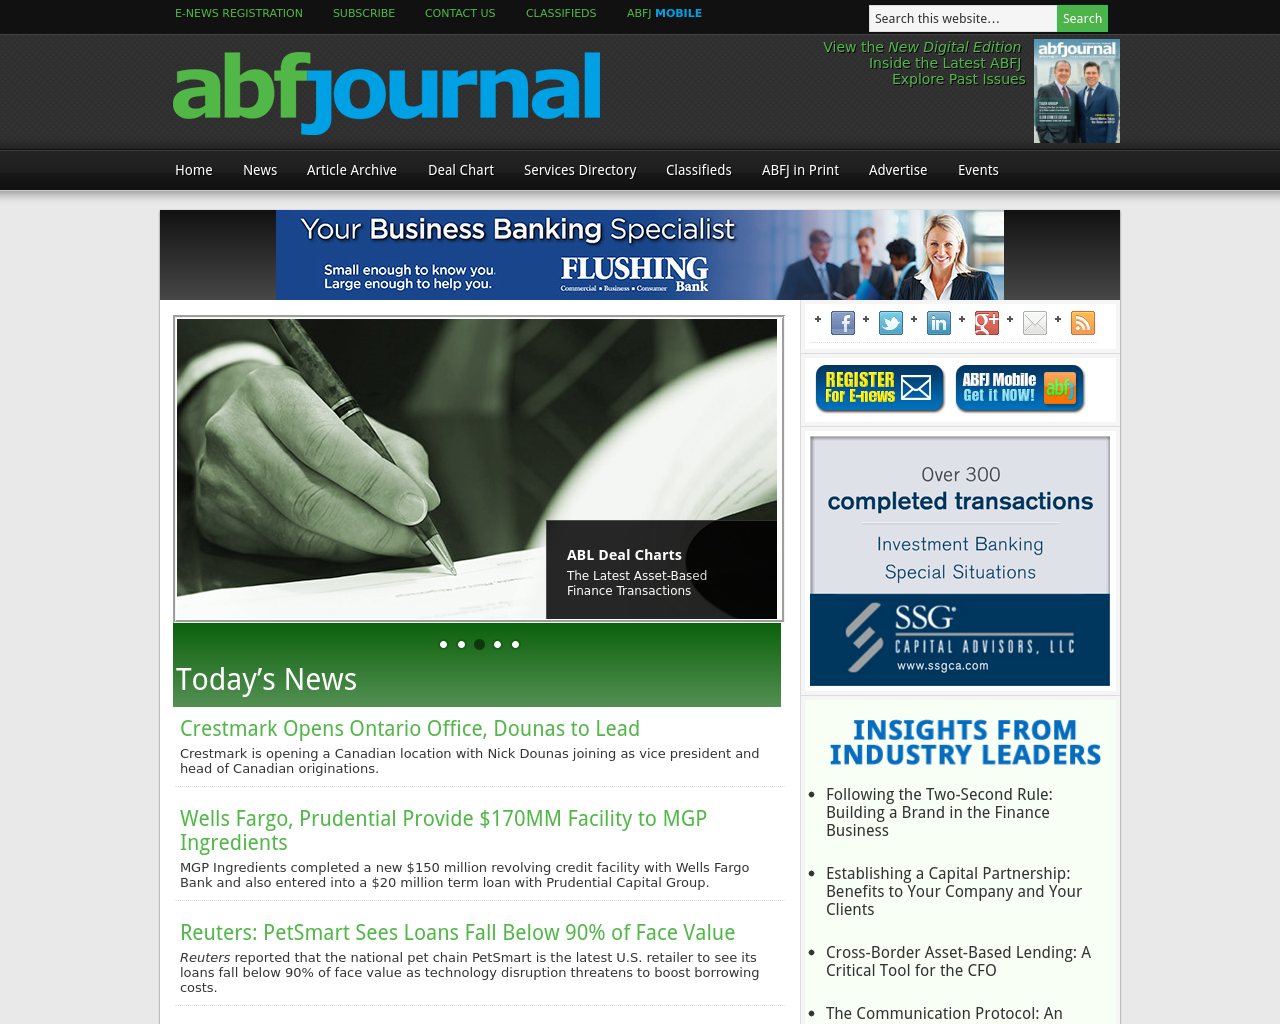 ABF-Journal-Advertising-Reviews-Pricing